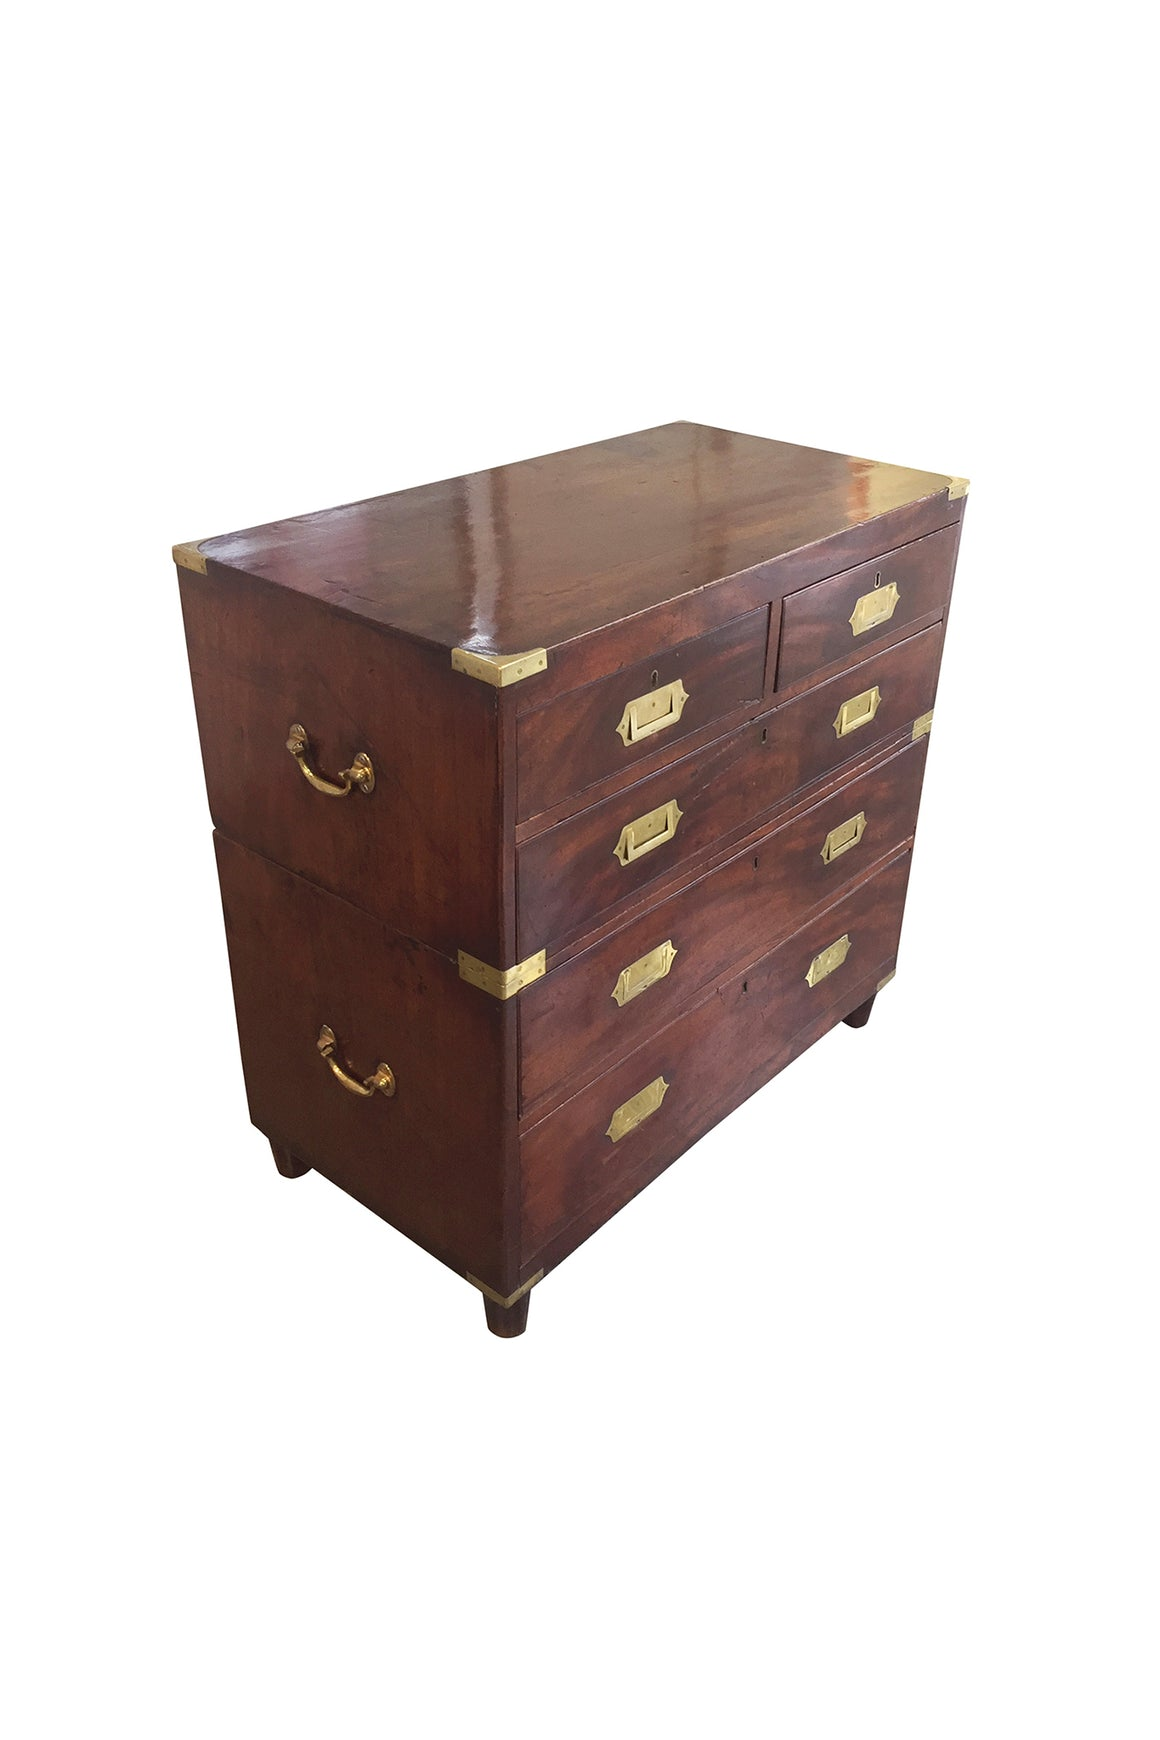 Antique English Mahogany Campaign Chest